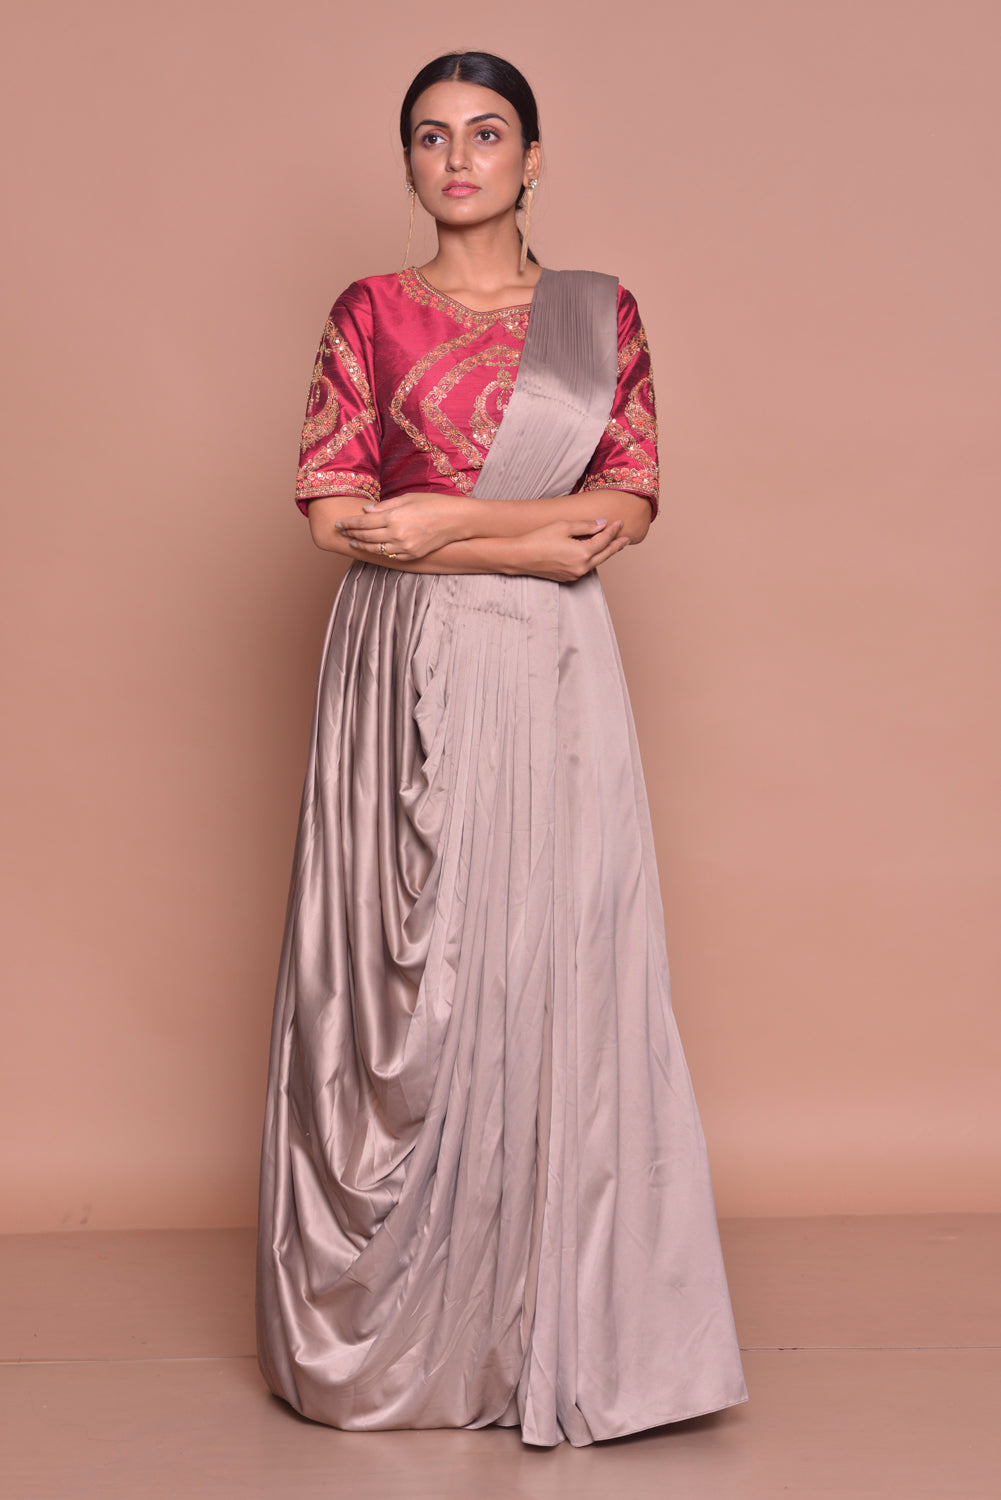 Buy stunning grey embroidered designer draped sari online in USA with maroon embroidered saree blouse. Flaunt Indian fashion with exquisite designer sarees, embroidered sarees, partywear saris from Pure Elegance Indian cloth store in USA. -side